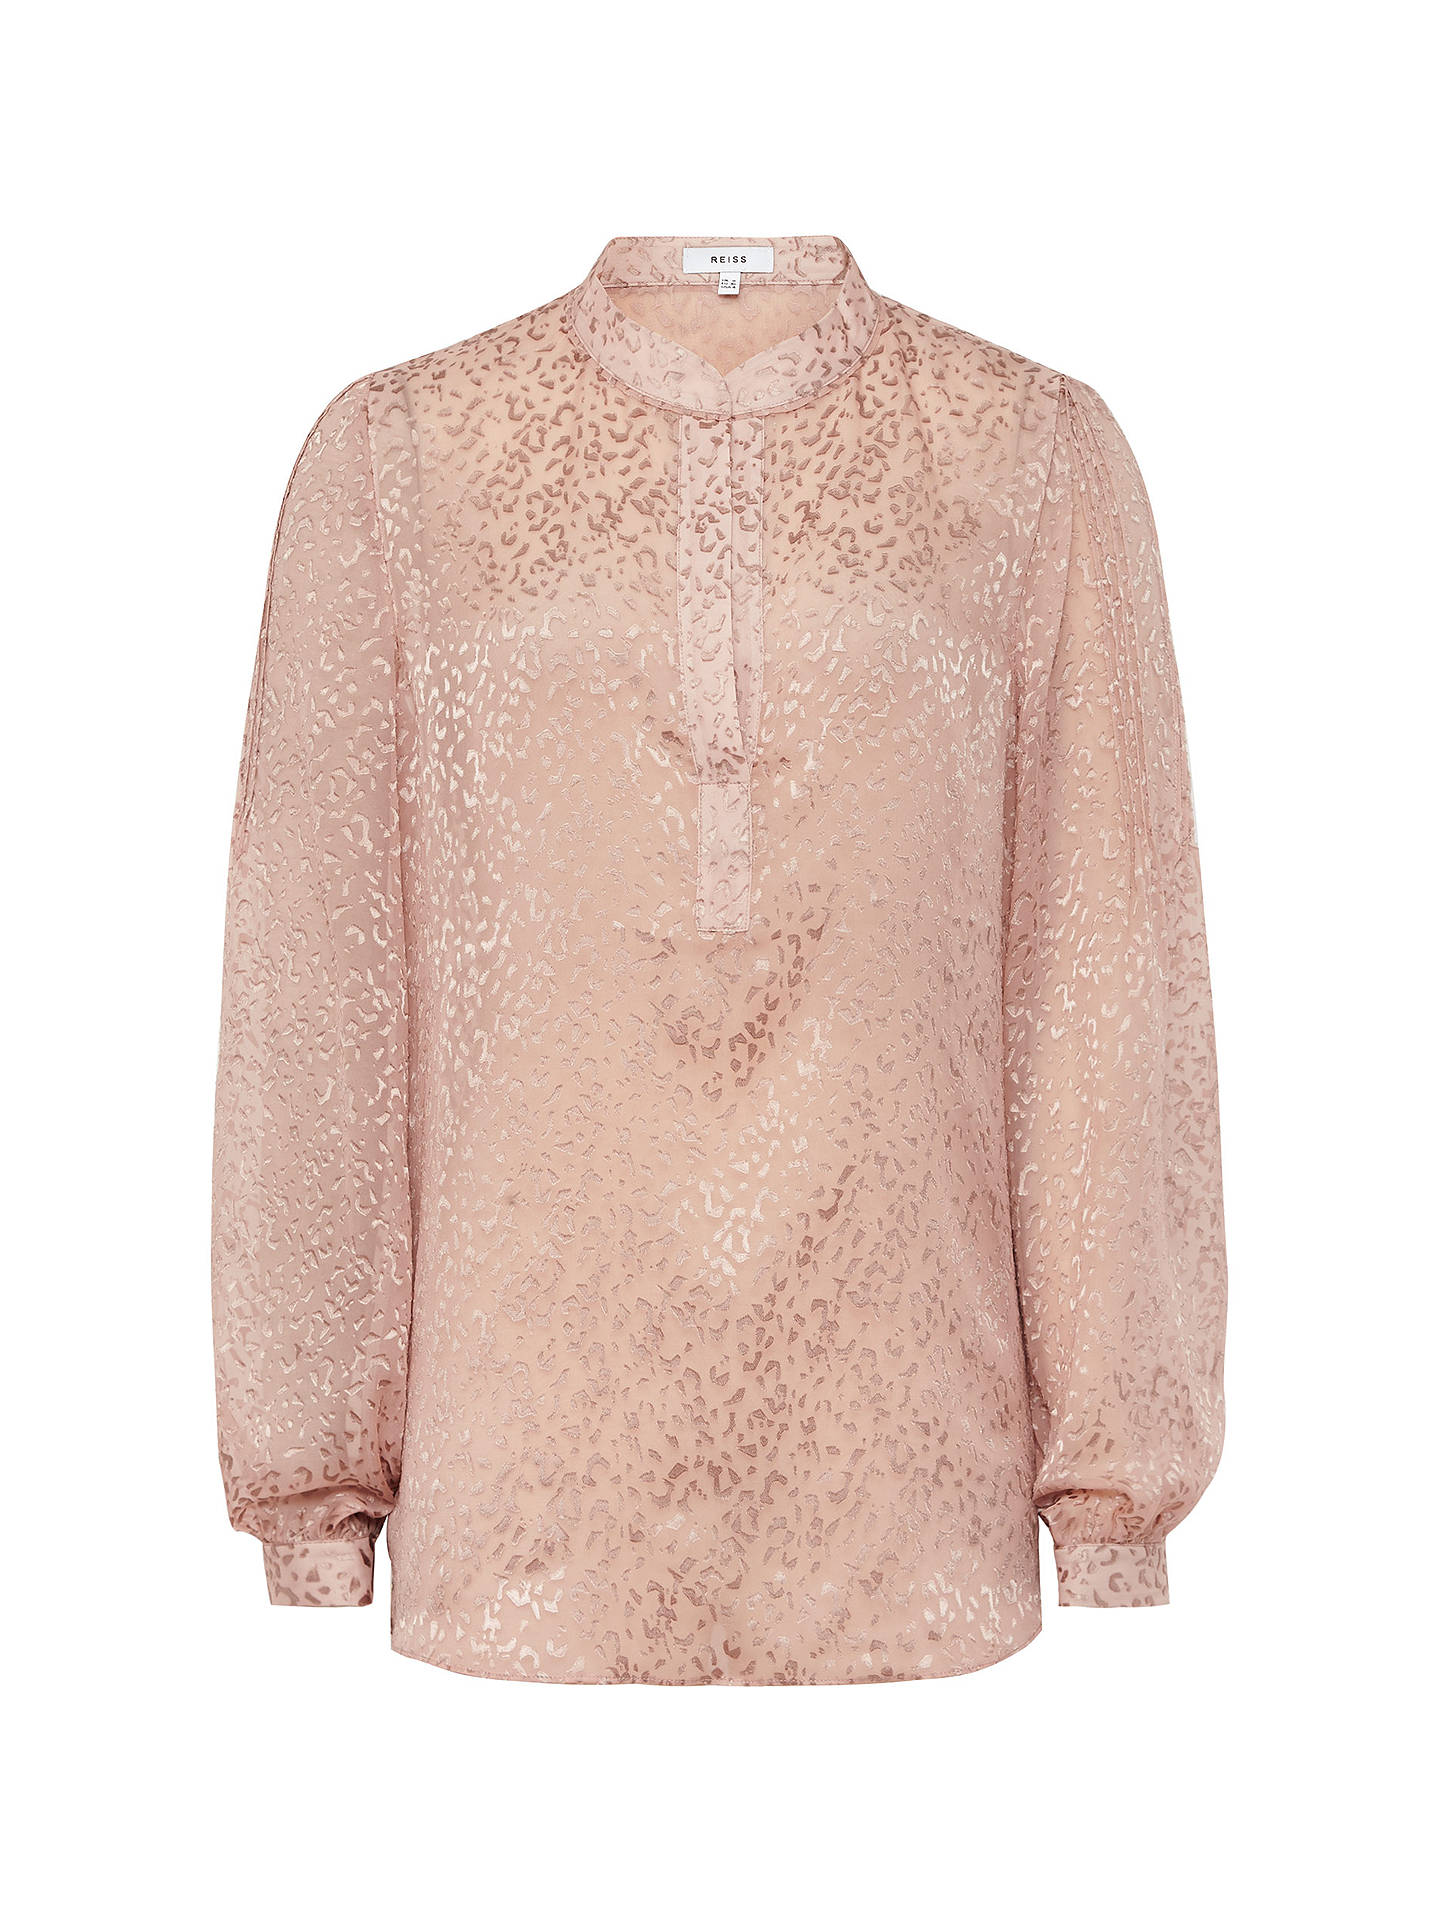 802cb223121271 ... Buy Reiss Brie Animal Burnout Blouse, Pink, 6 Online at johnlewis.com  ...